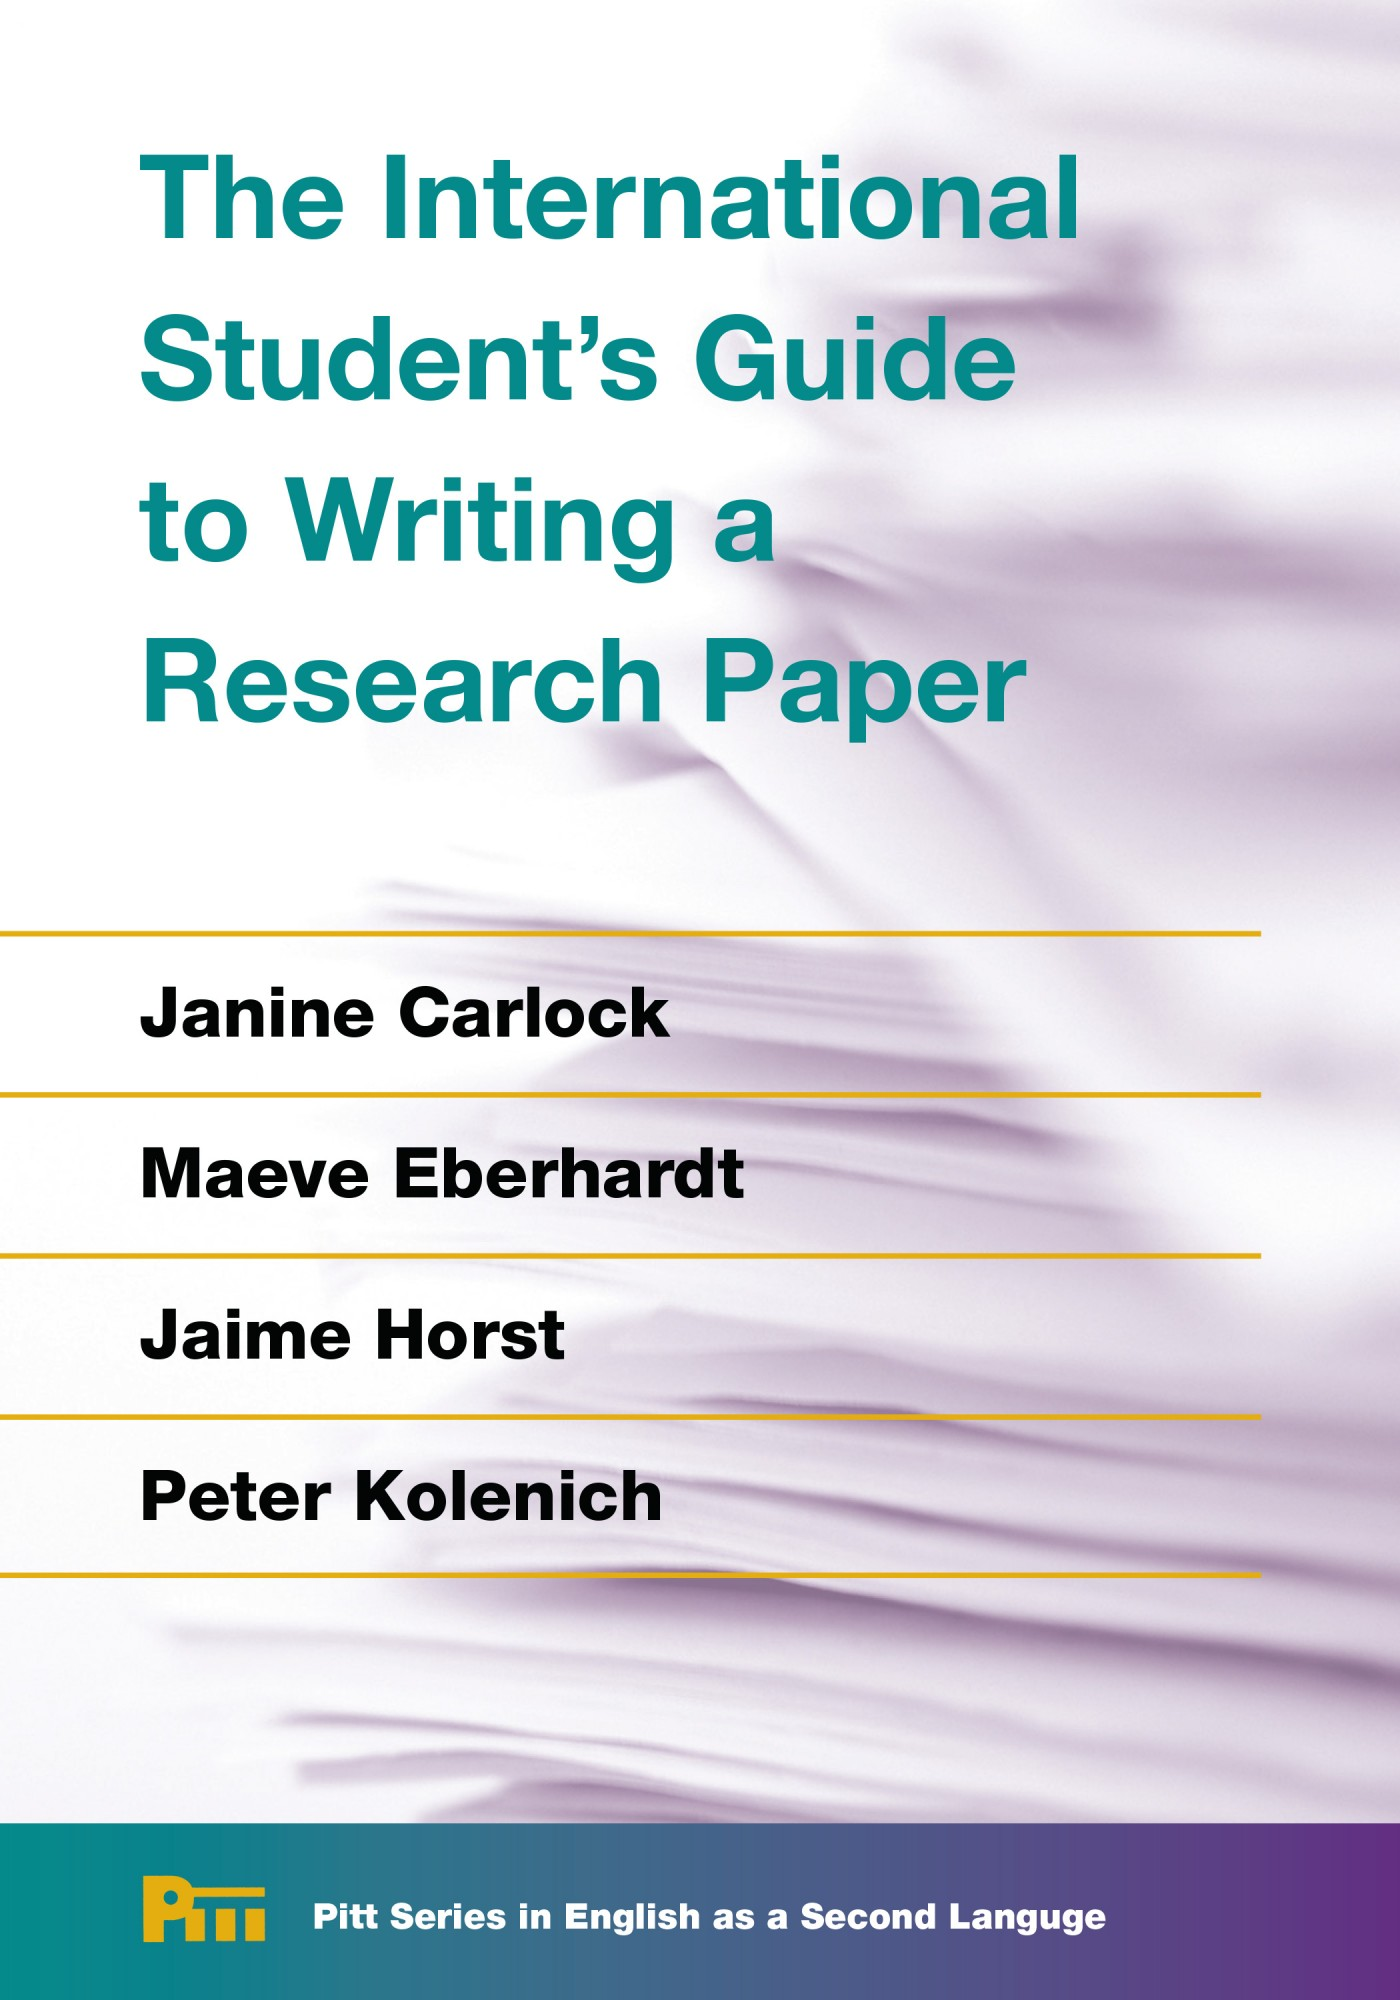 013 Writing The Research Paper Phenomenal Pdf How To Write A Outline Ppt Papers Complete Guide 16th Edition 1400